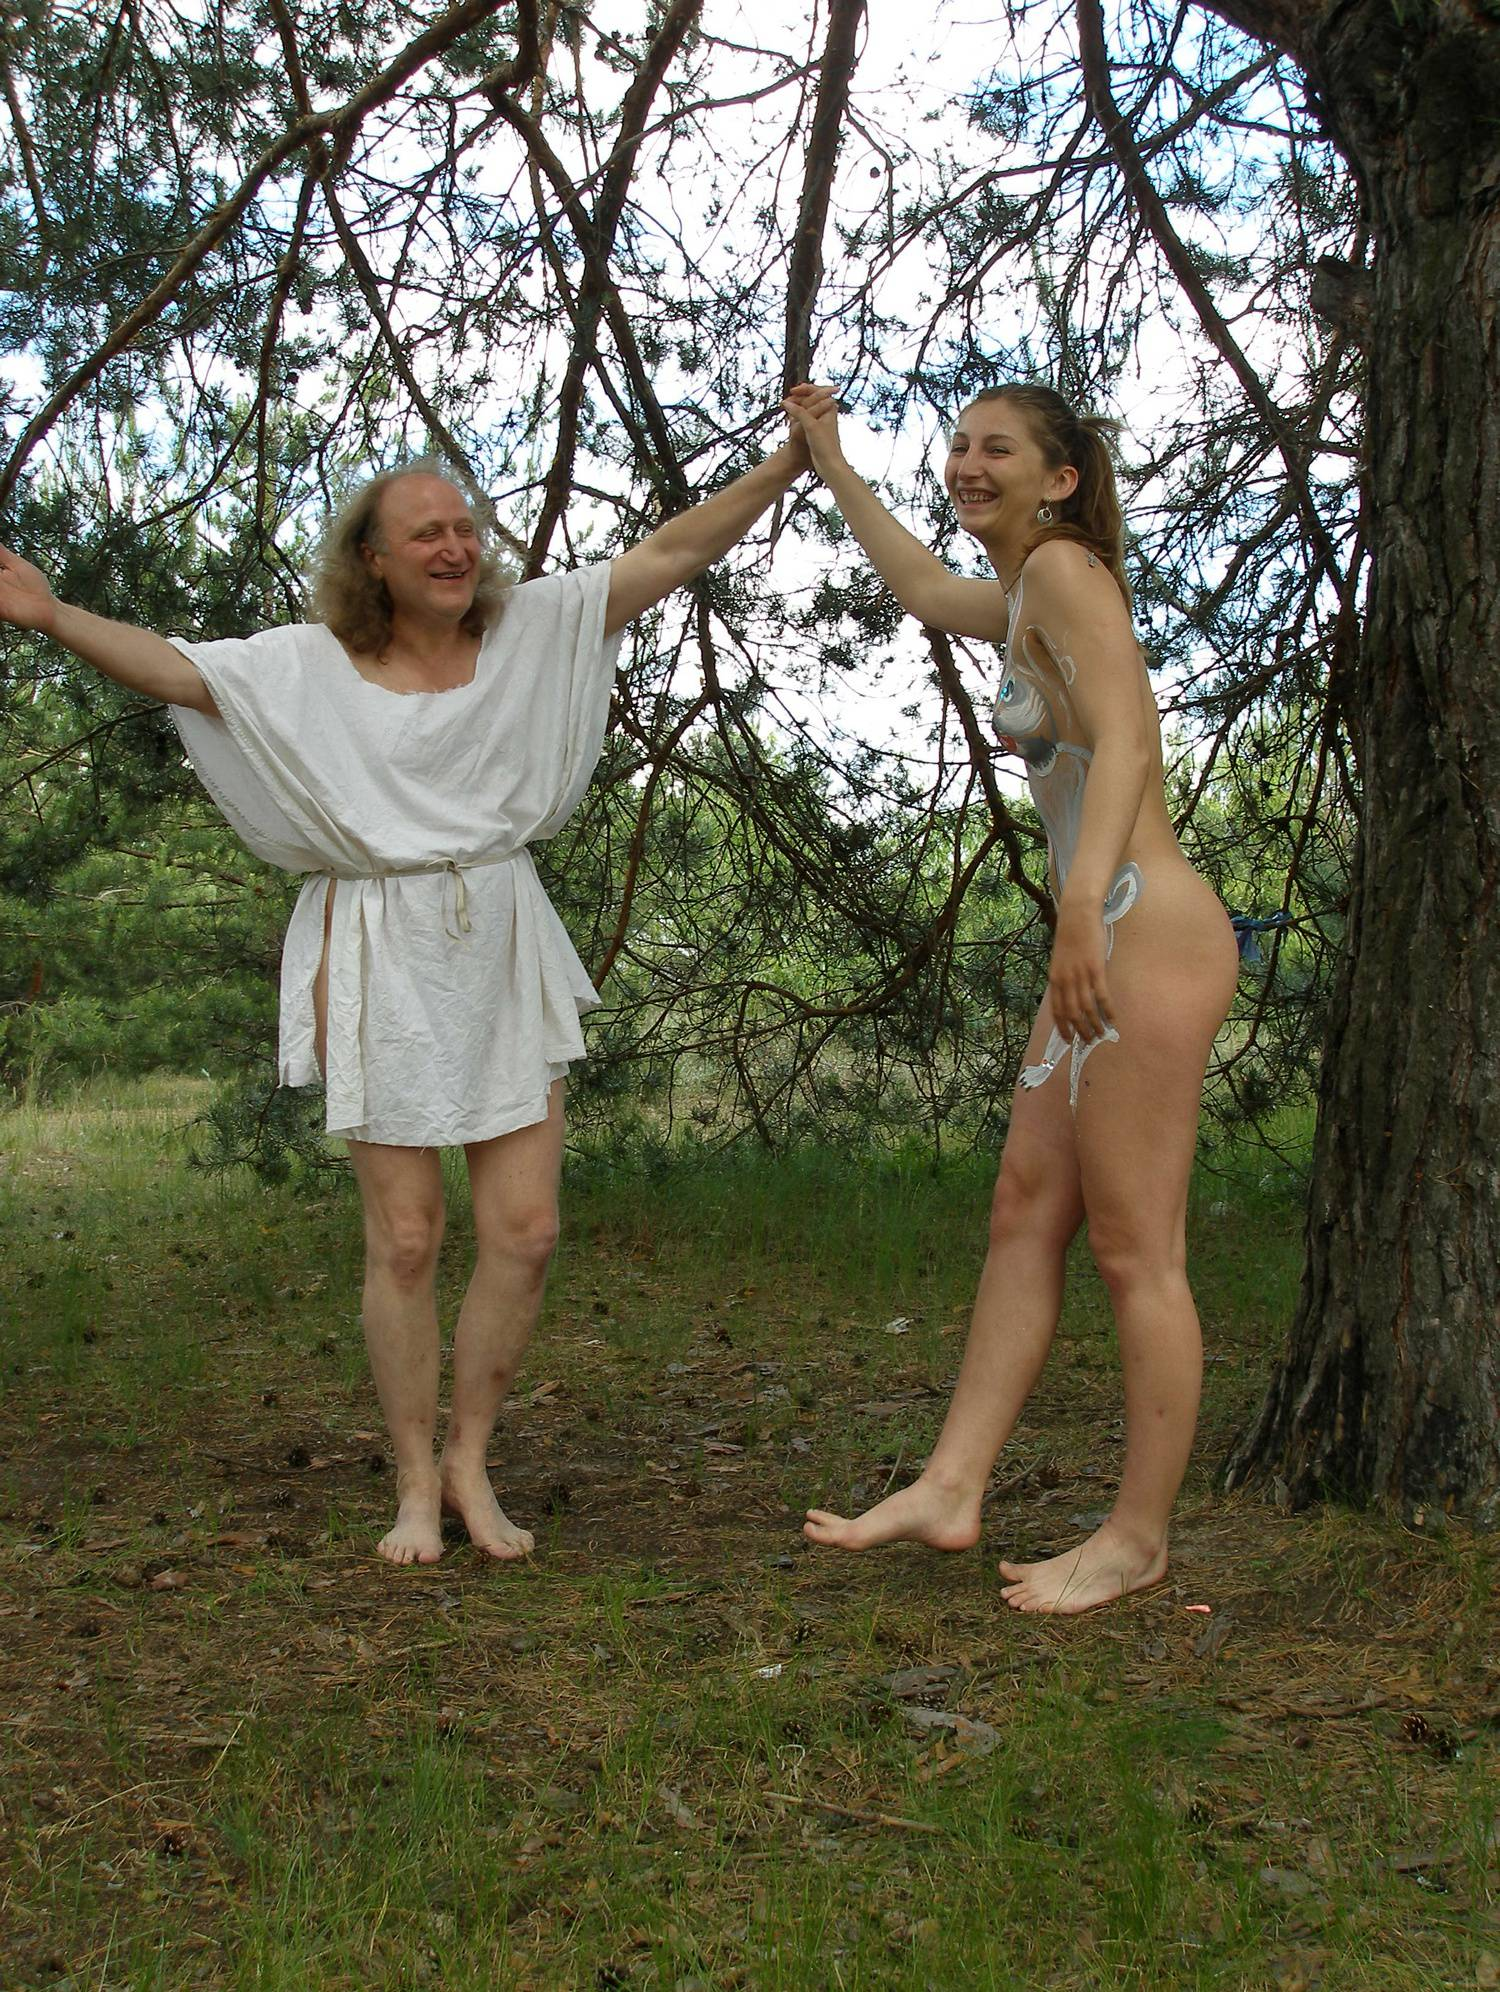 Nudist Pictures Kiev White Robe Goddess - 2